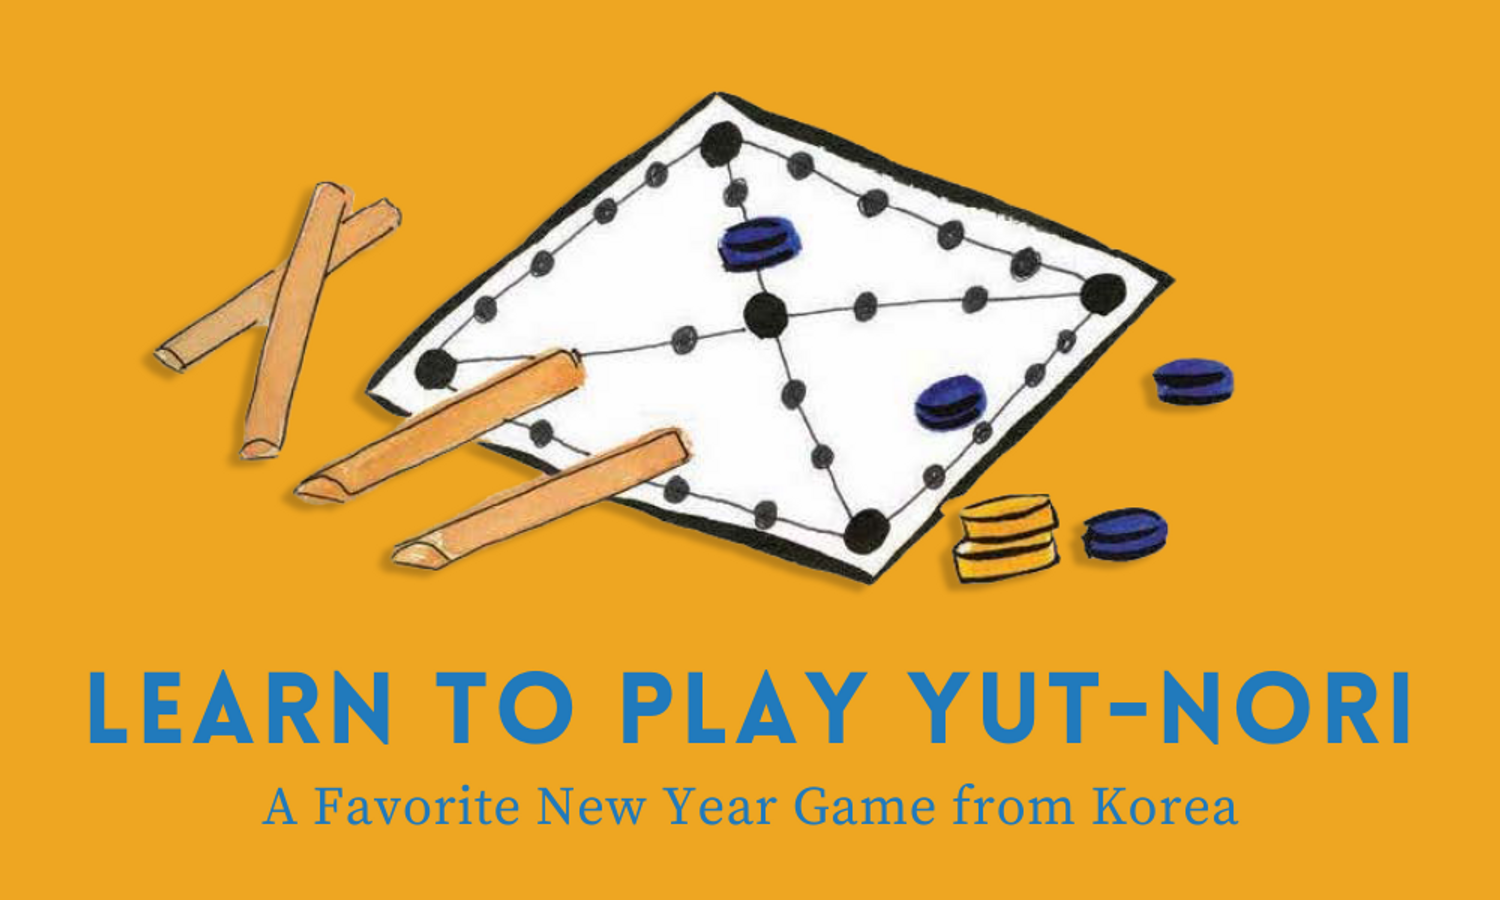 Learn to Play Yut-nori: A Favorite New Year Game from Korea